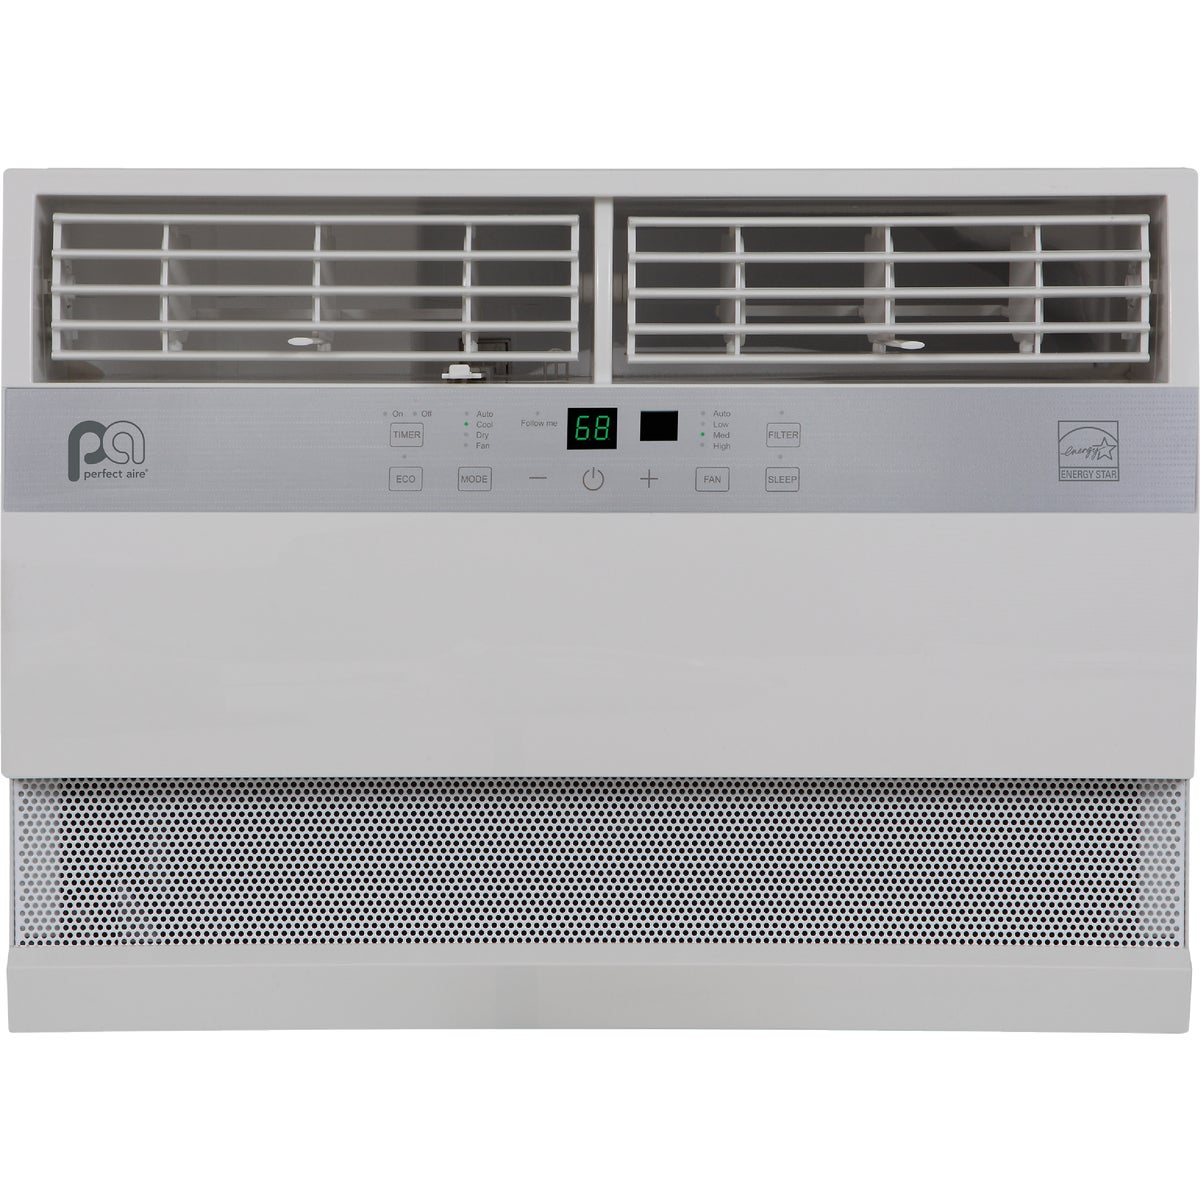 10000BTU AIR CONDITIONER - 2PAC10000 by Perfect Aire Import